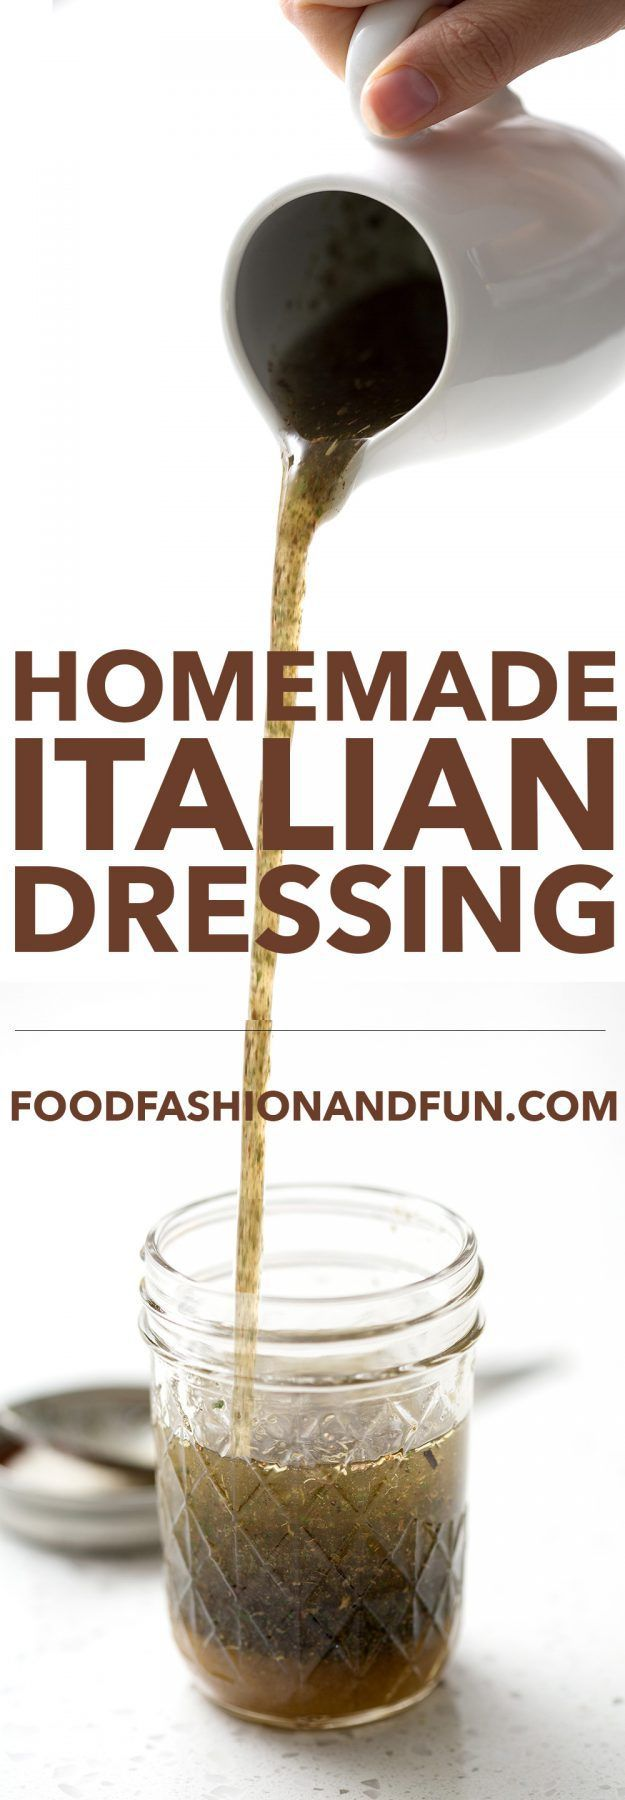 Easy Italian Dressing recipe made of pantry staples. You'll never have to buy store-bought again. This recipe is allergy friendly, AIP, paleo & vegan.